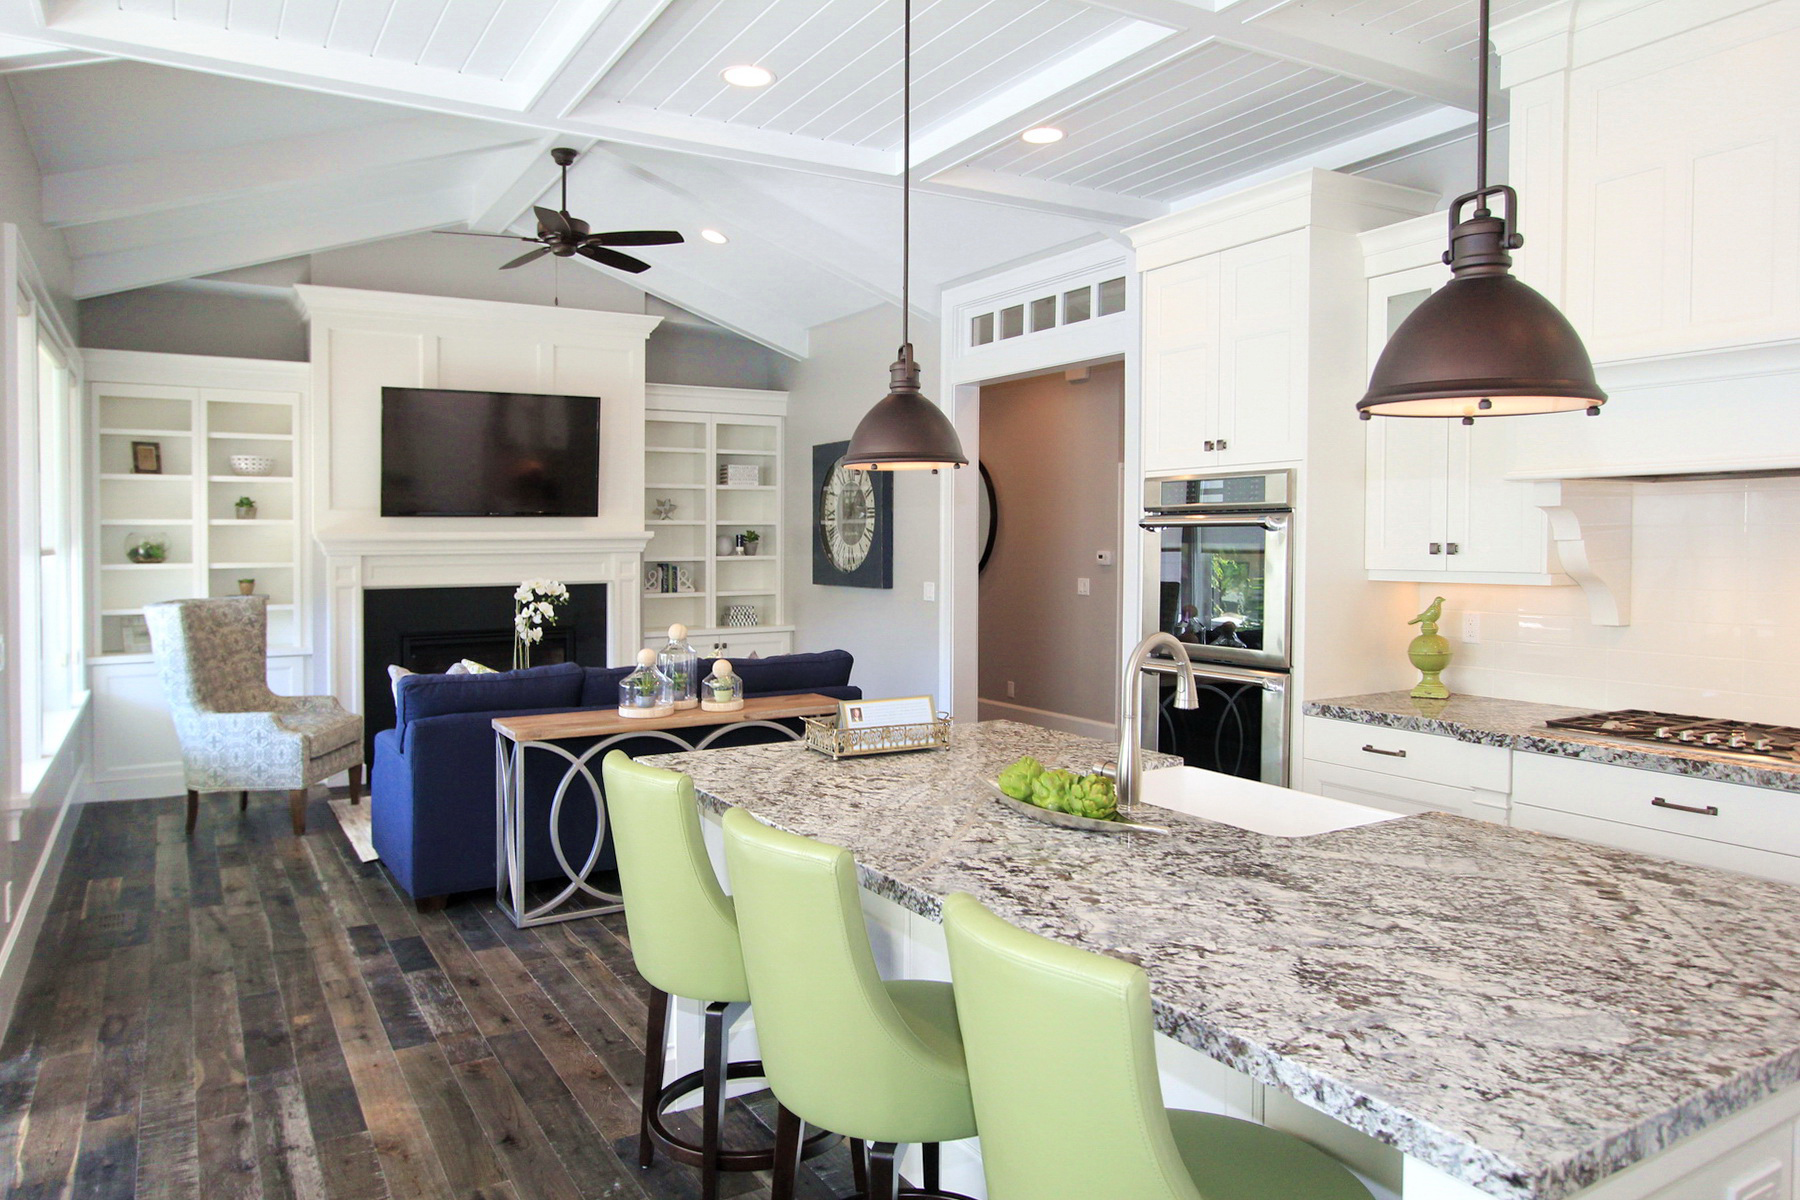 Lighting Options Over The Kitchen Island - Center island lighting